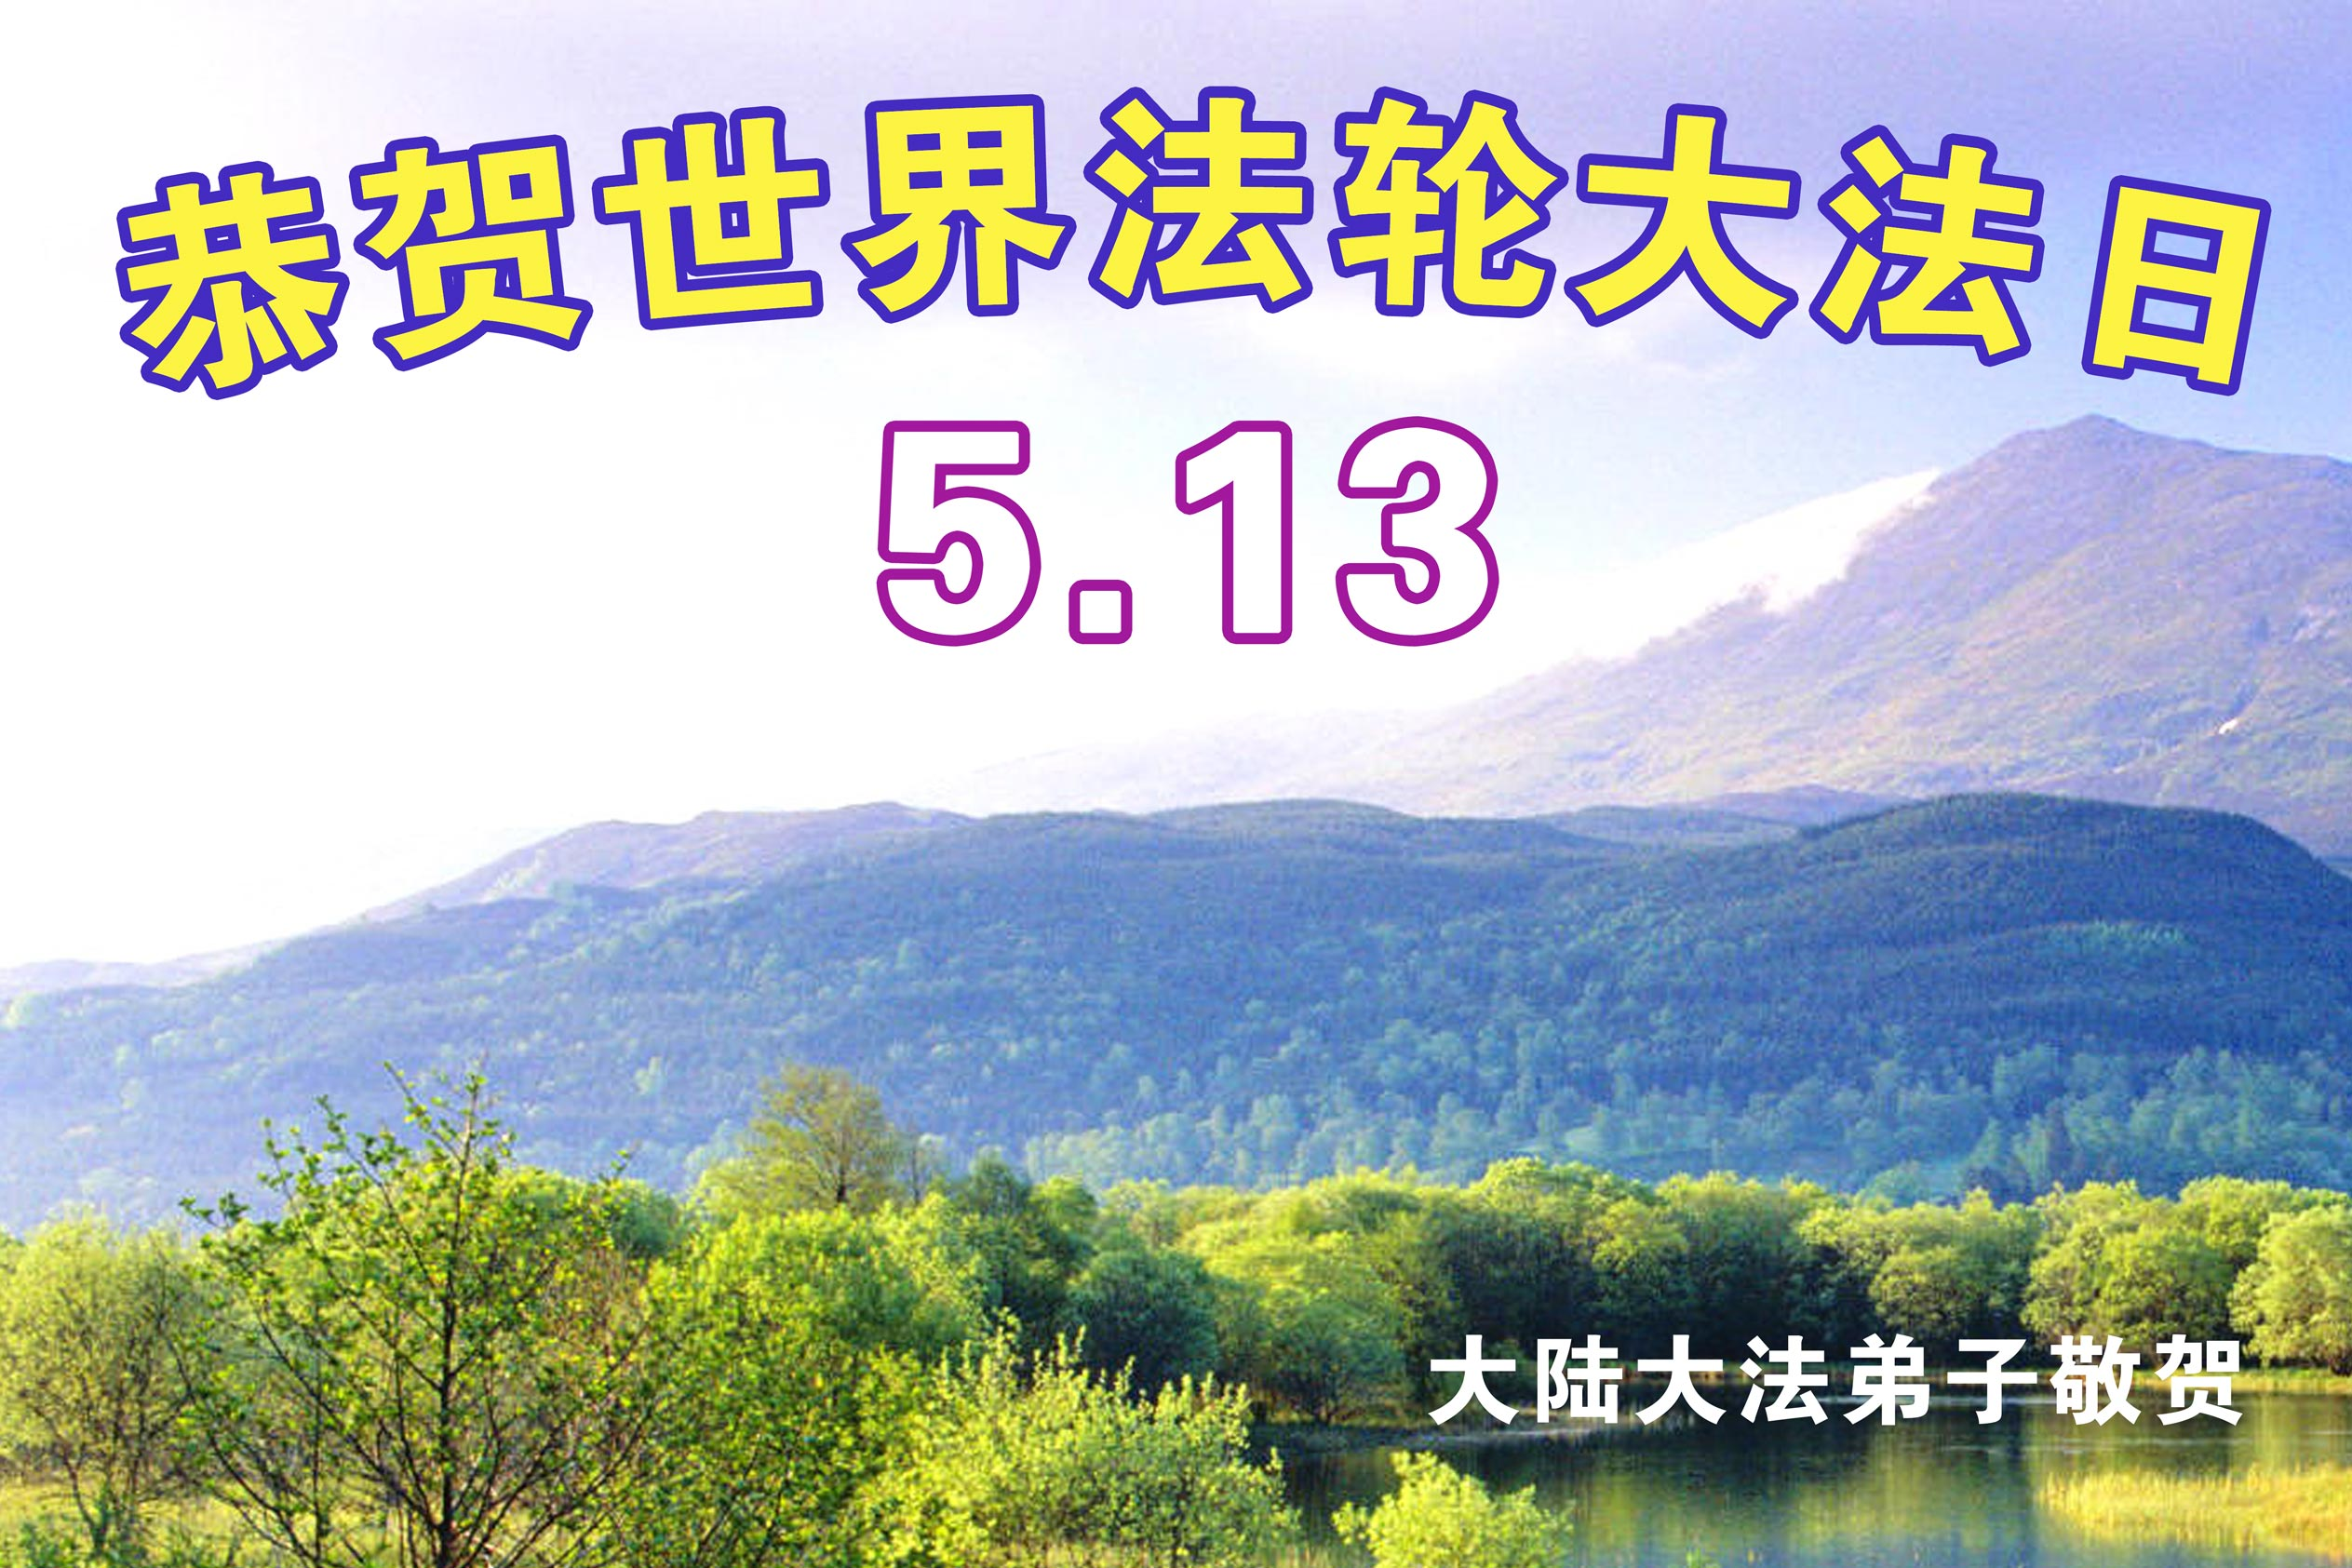 Celebrating The 15th World Falun Dafa Day And The 22nd Anniversary